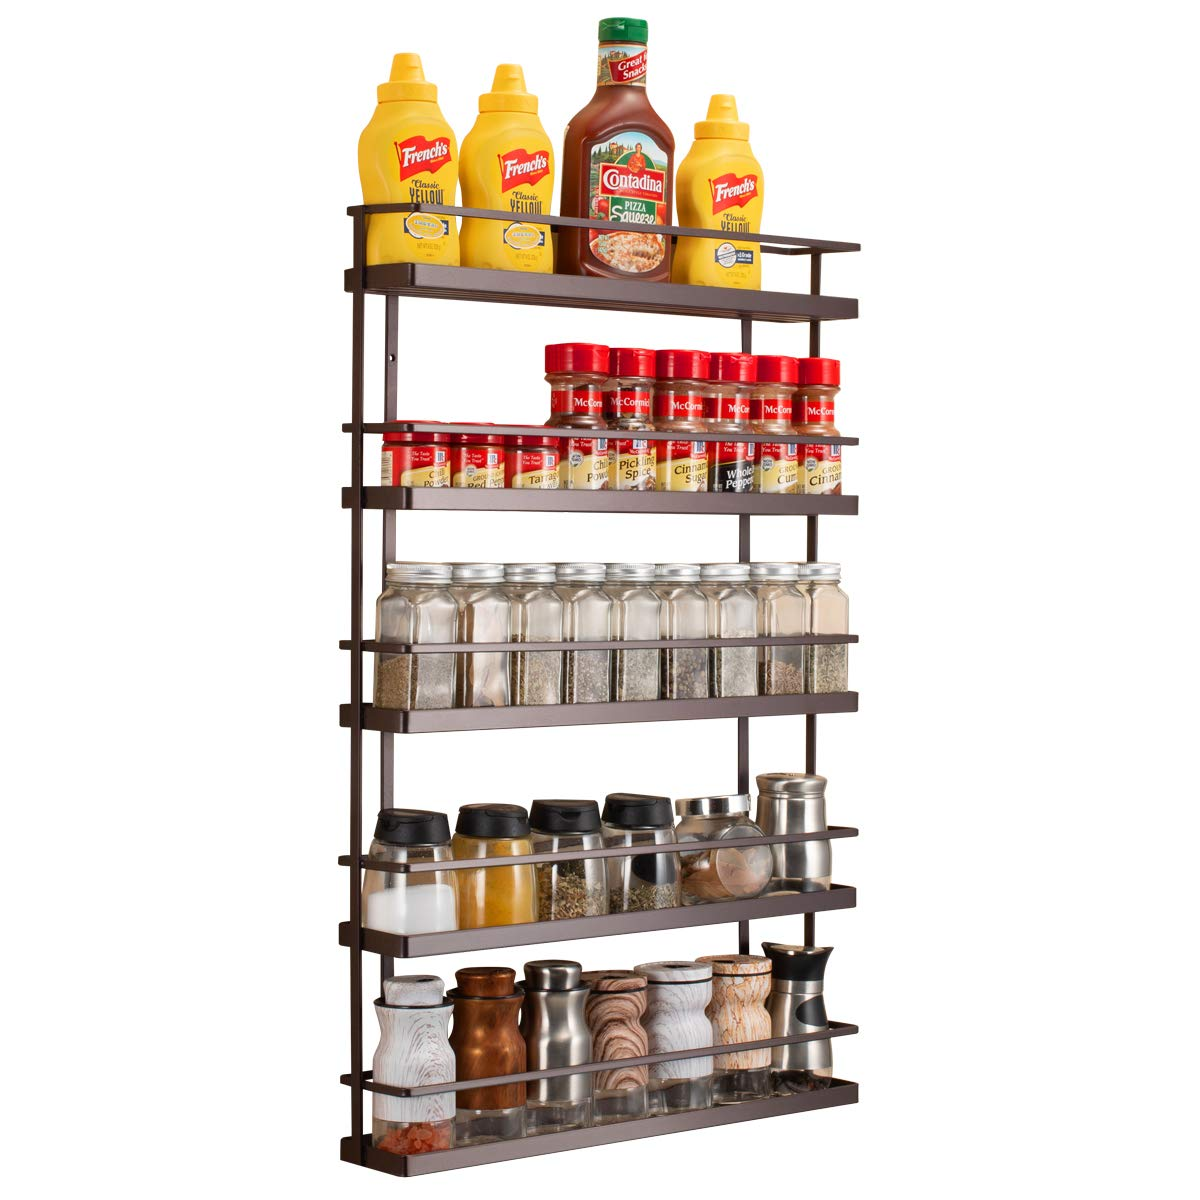 5 Tier Wall Mount Spice Rack Organizer,Pantry Cabinet Door Spice Shelf Storage by GONGSHI